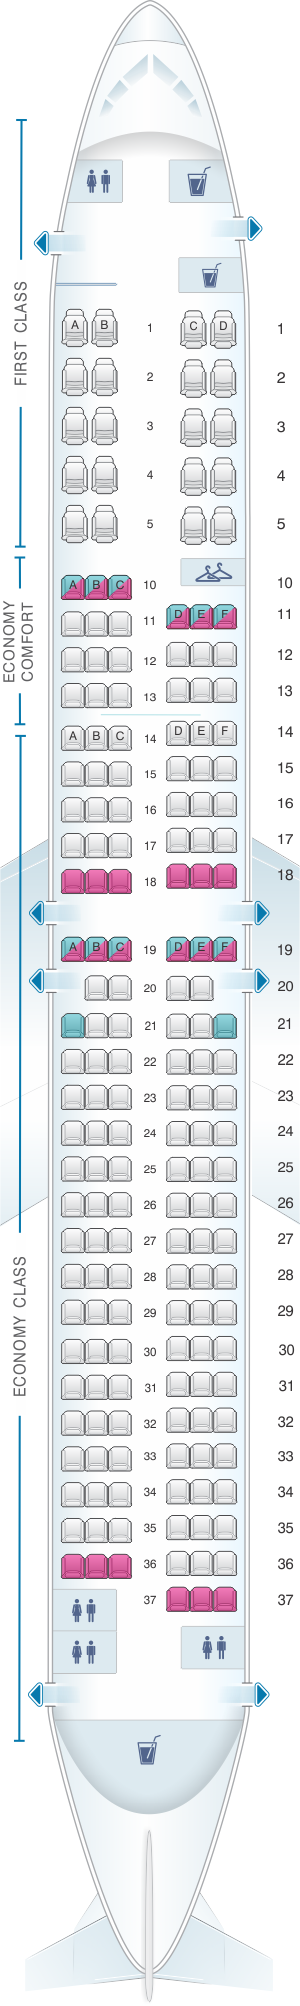 Detailed Seat Map Delta Airlines Boeing B737 900er 739 Find The Best Airplanes Seats Information On Legroom Best Airplane Asiana Airlines Spirit Airlines